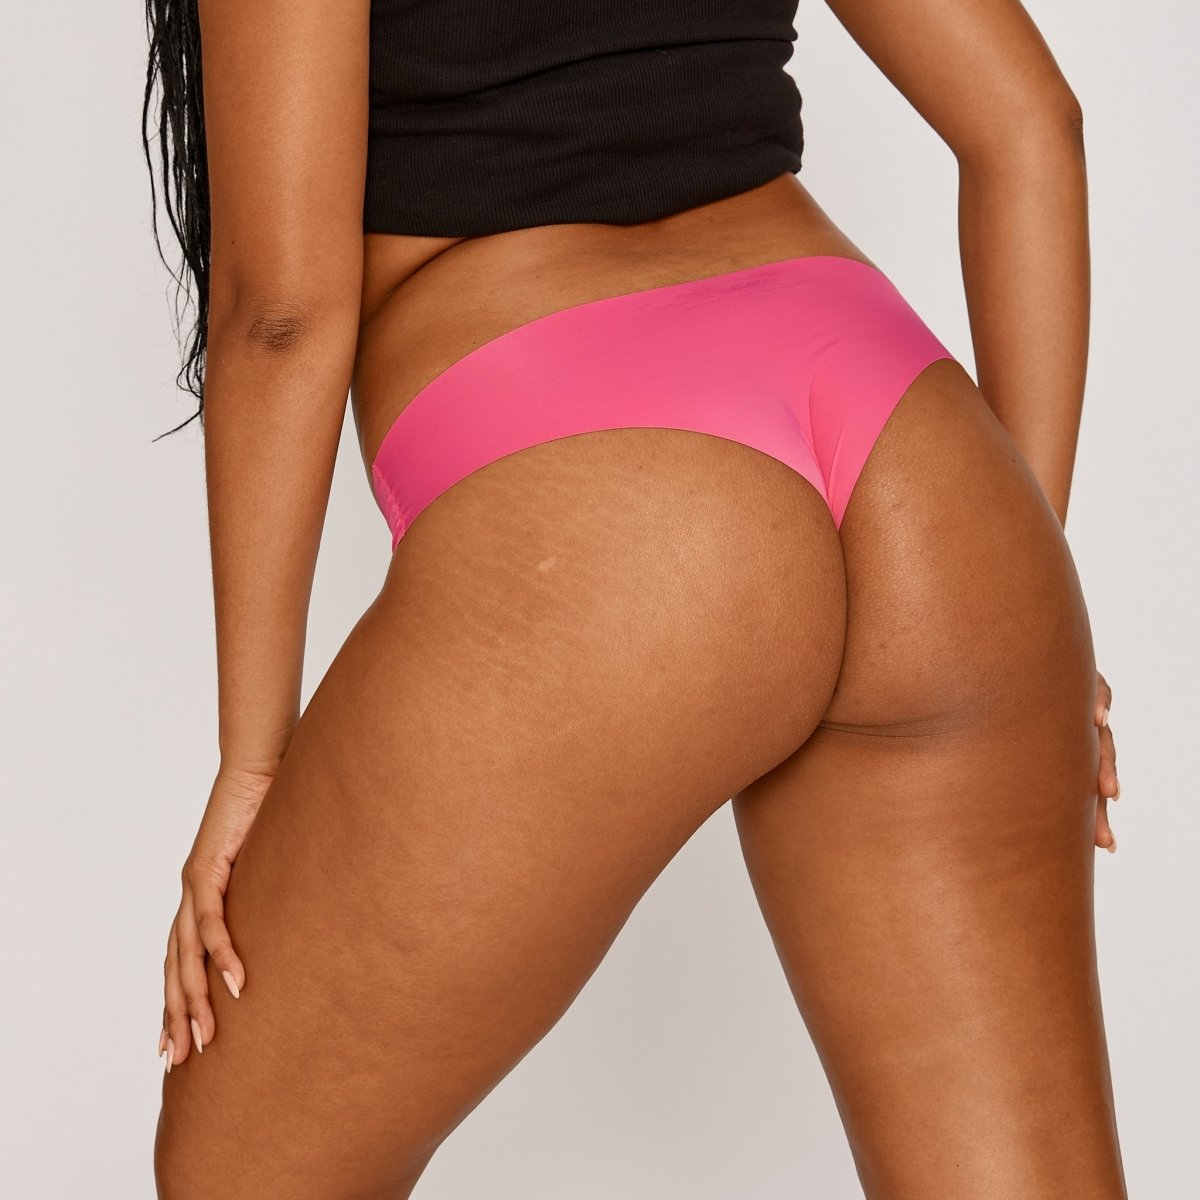 Original-Rise Cheeky - Confetti - Peach Underwear